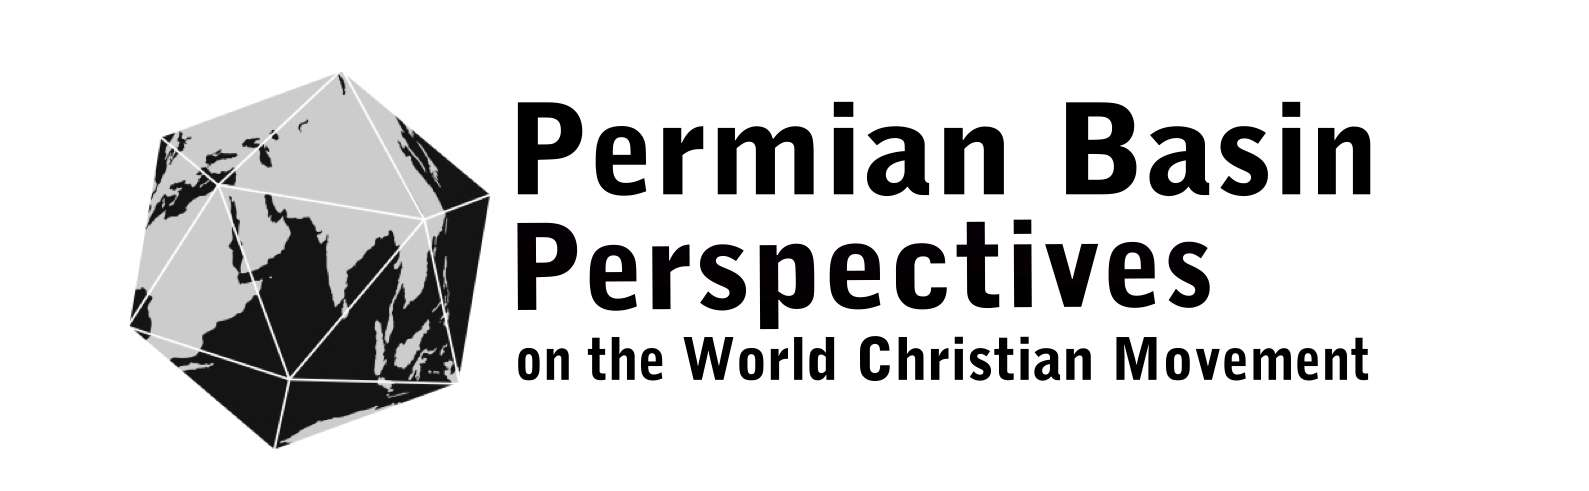 perspectives on the world christian movement mission Perspectives connect service this perspectives connect service is provided to you in partnership with finishers project, providing christian adults with information, challenge and pathways for discovering and processing opportunities in missions—short-term or as a next career in the us or abroad.